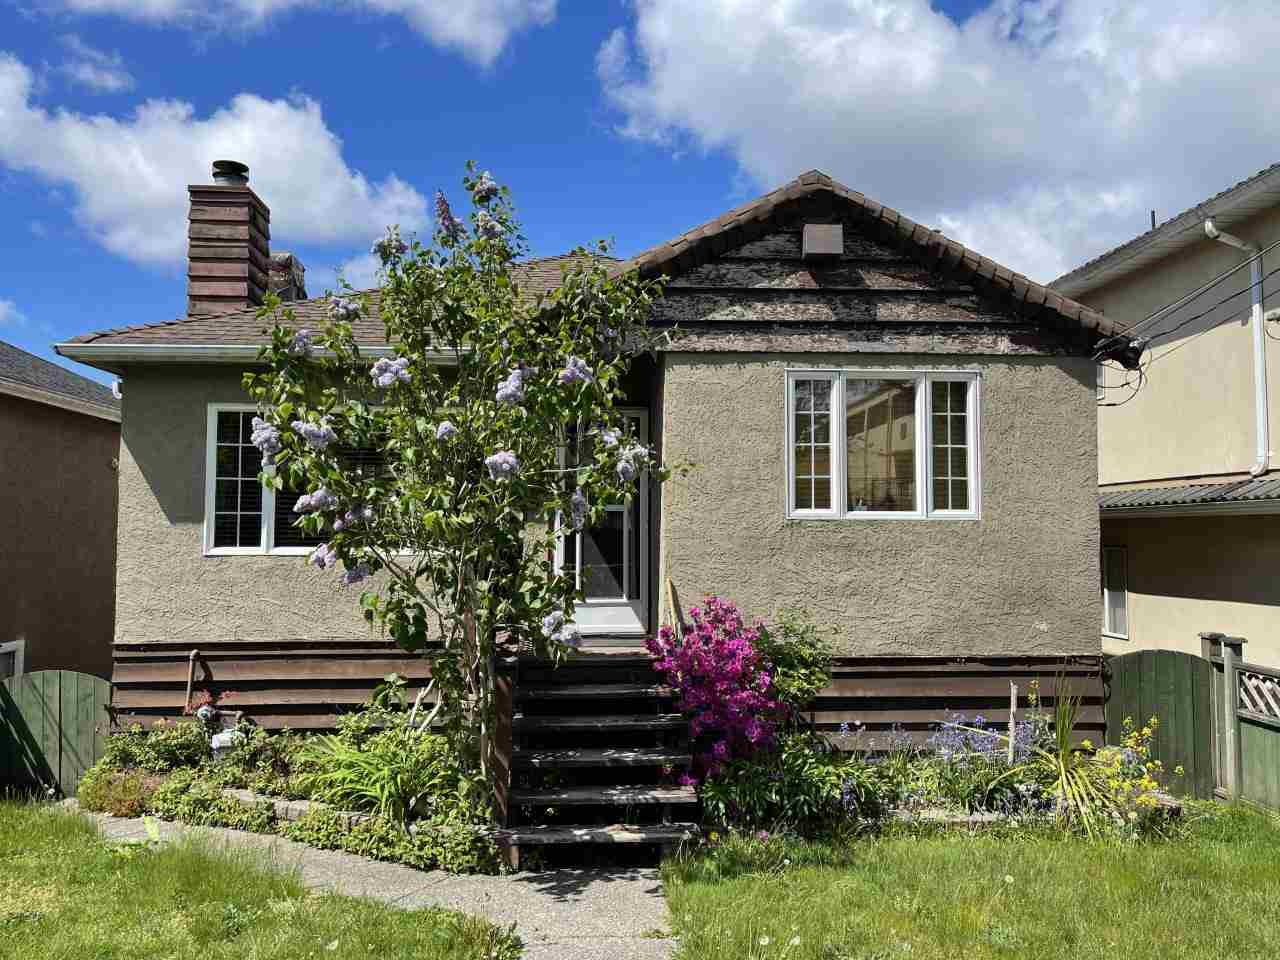 4749 SLOCAN STREET - Collingwood VE House/Single Family for sale, 3 Bedrooms (R2578550) - #1